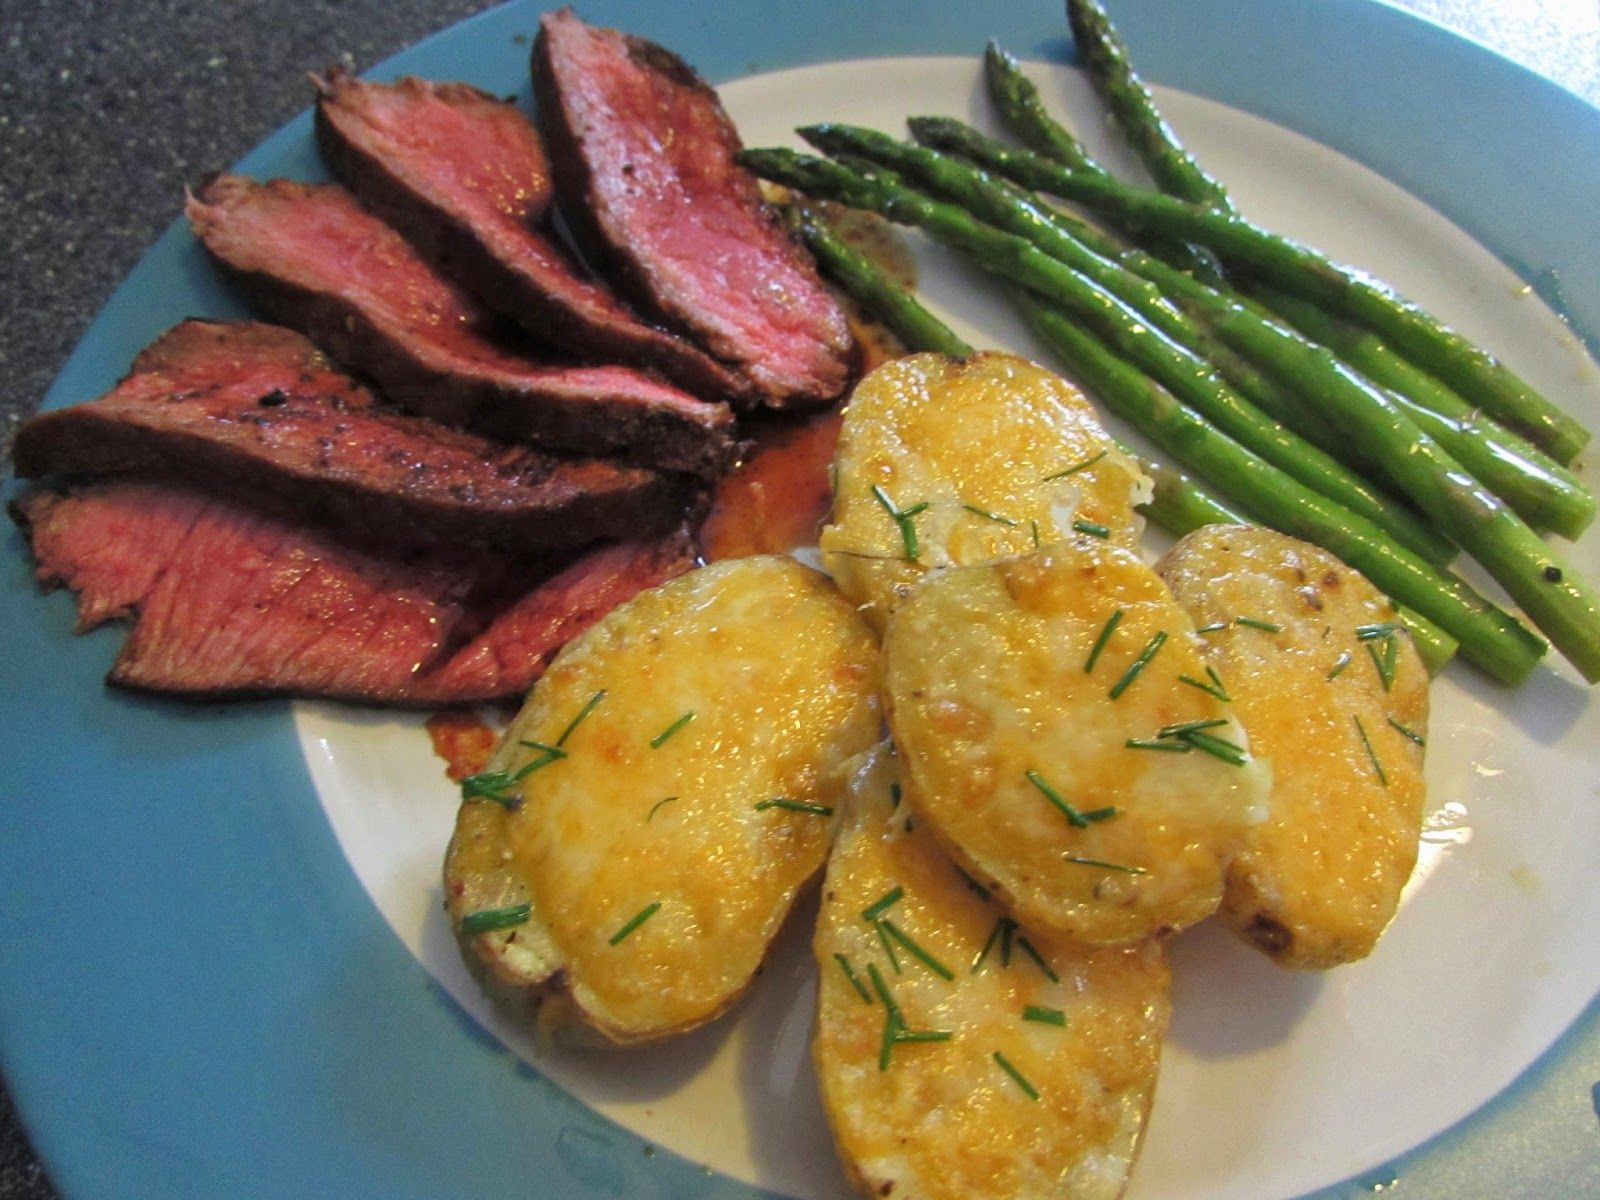 Let me just tell you that you will LOVE this meal! It is a WINNER. If you are a meat and potatoes person, or your husband or significant other is, this is a meal for them. My littles love this meal fo